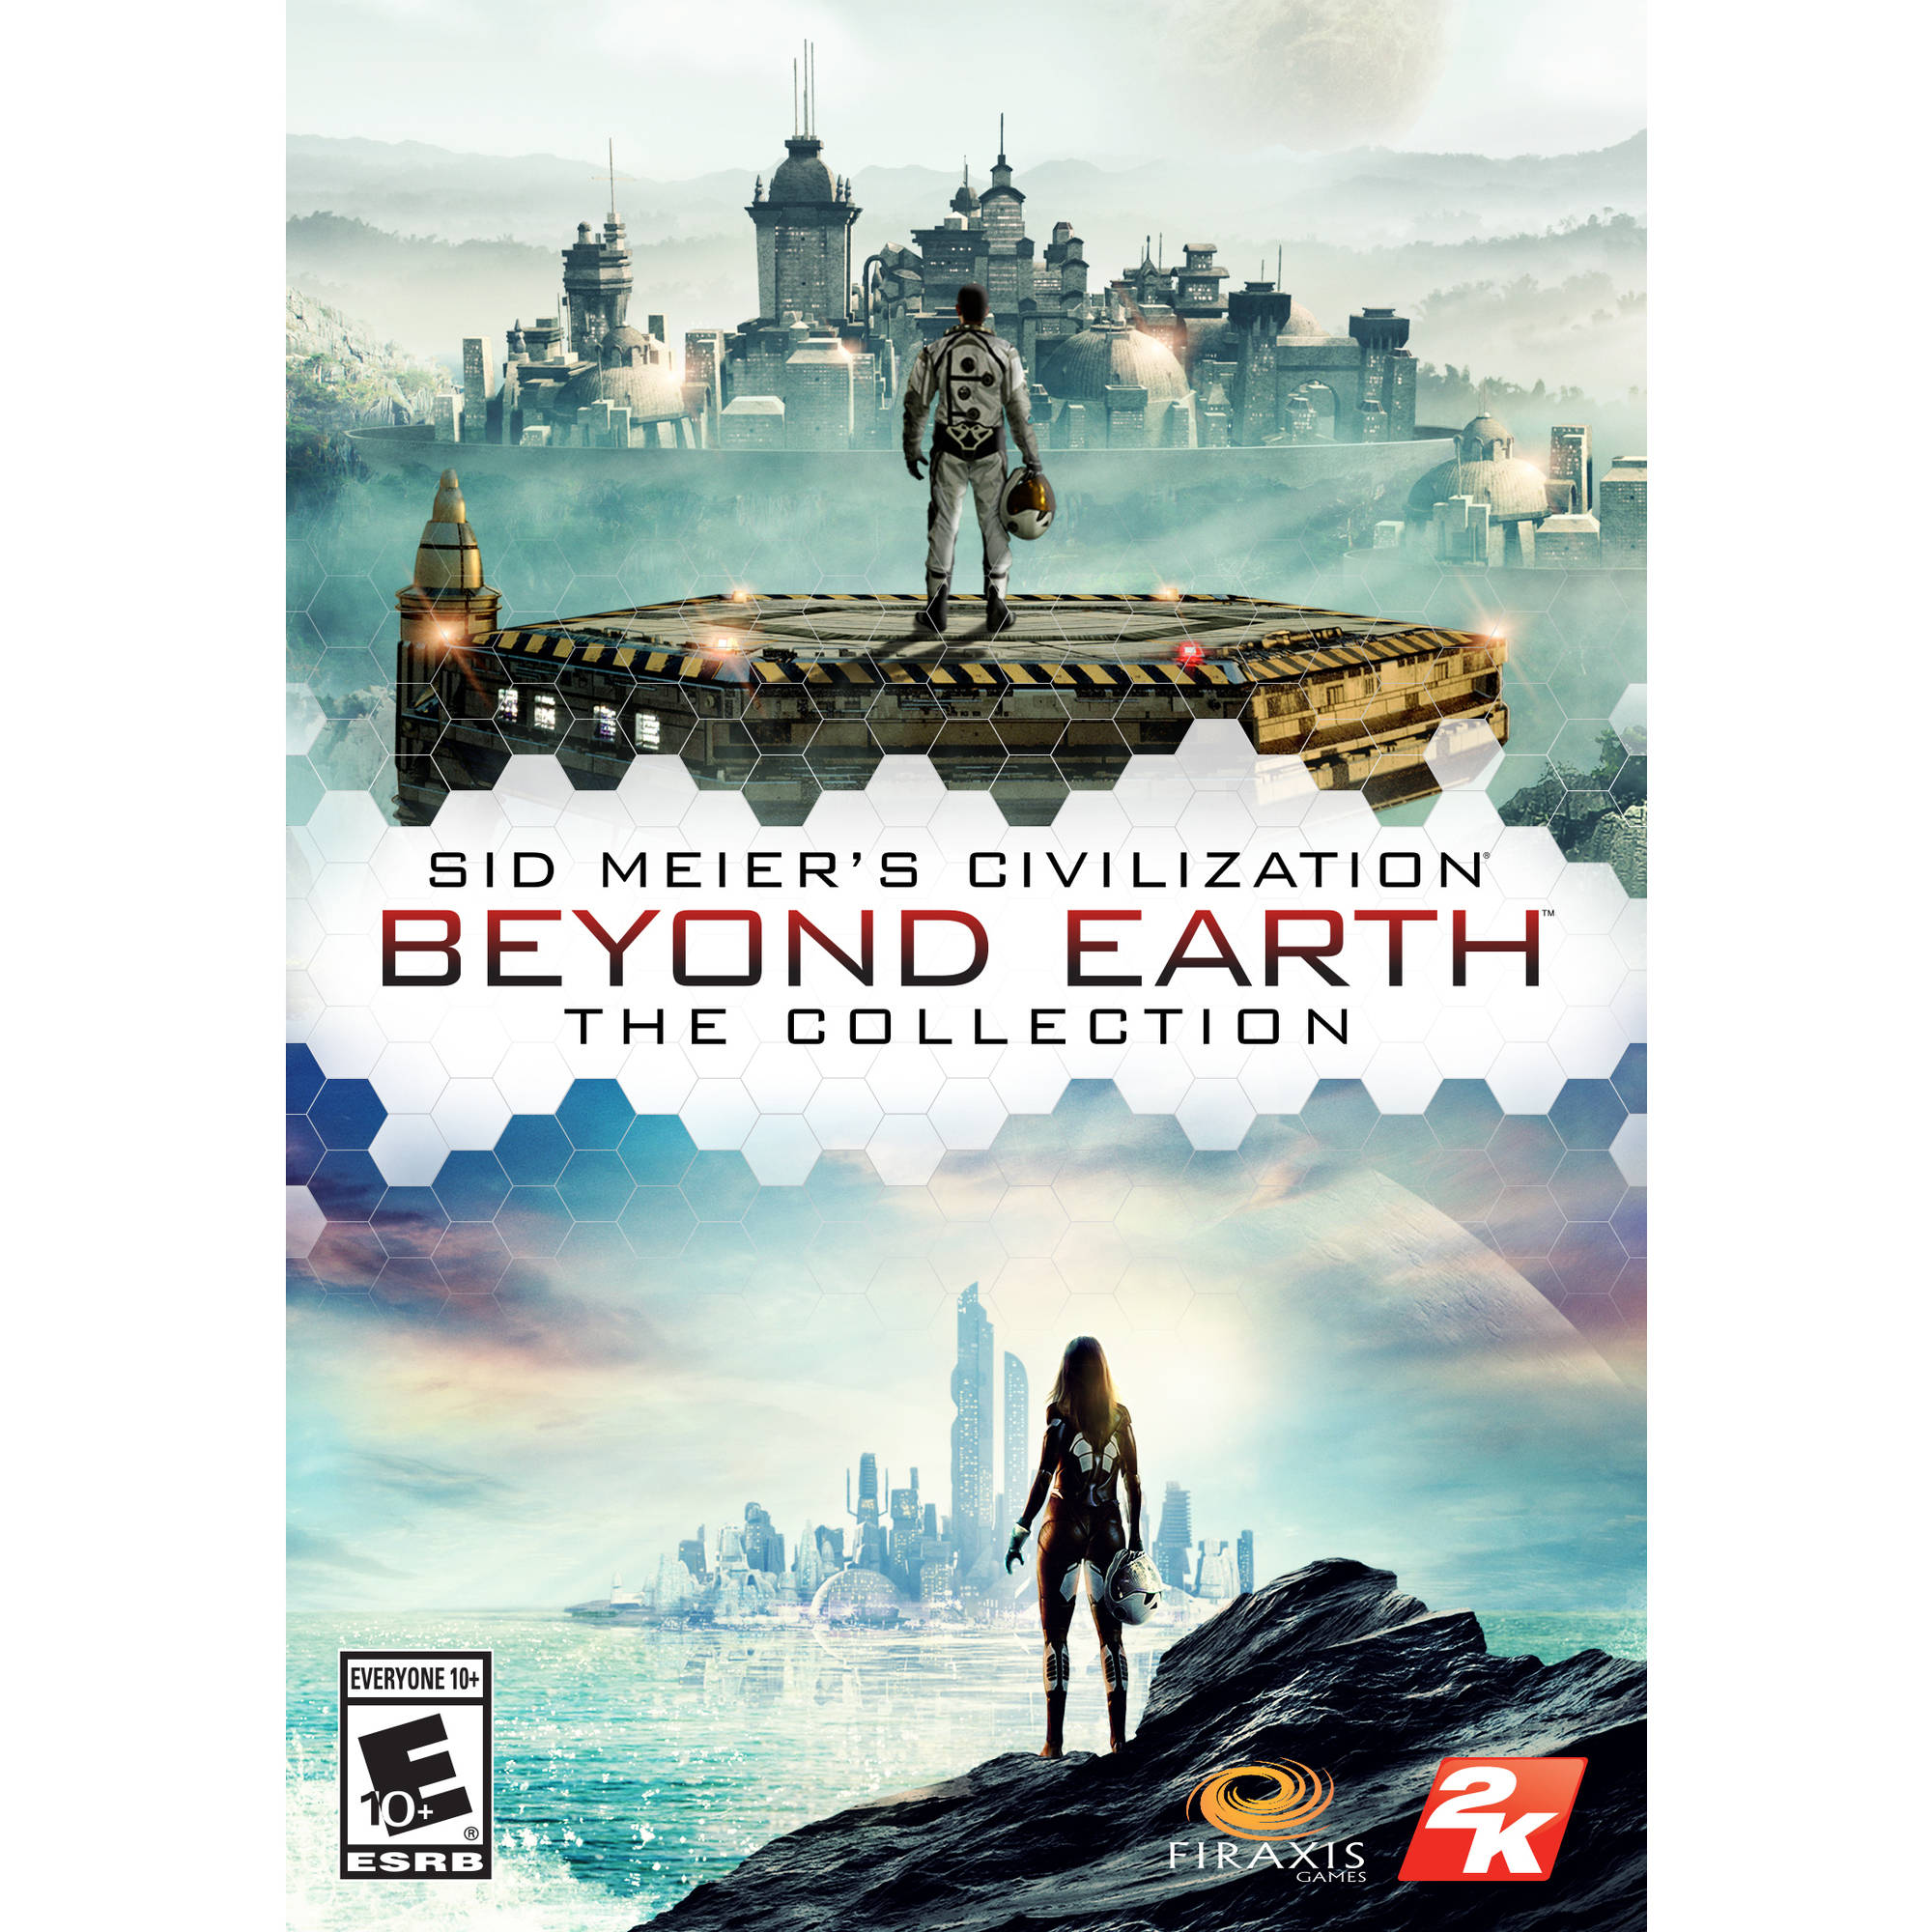 Sid Meier's Civilization: Beyond Earth - The Collection (PC) (Email Delivery)